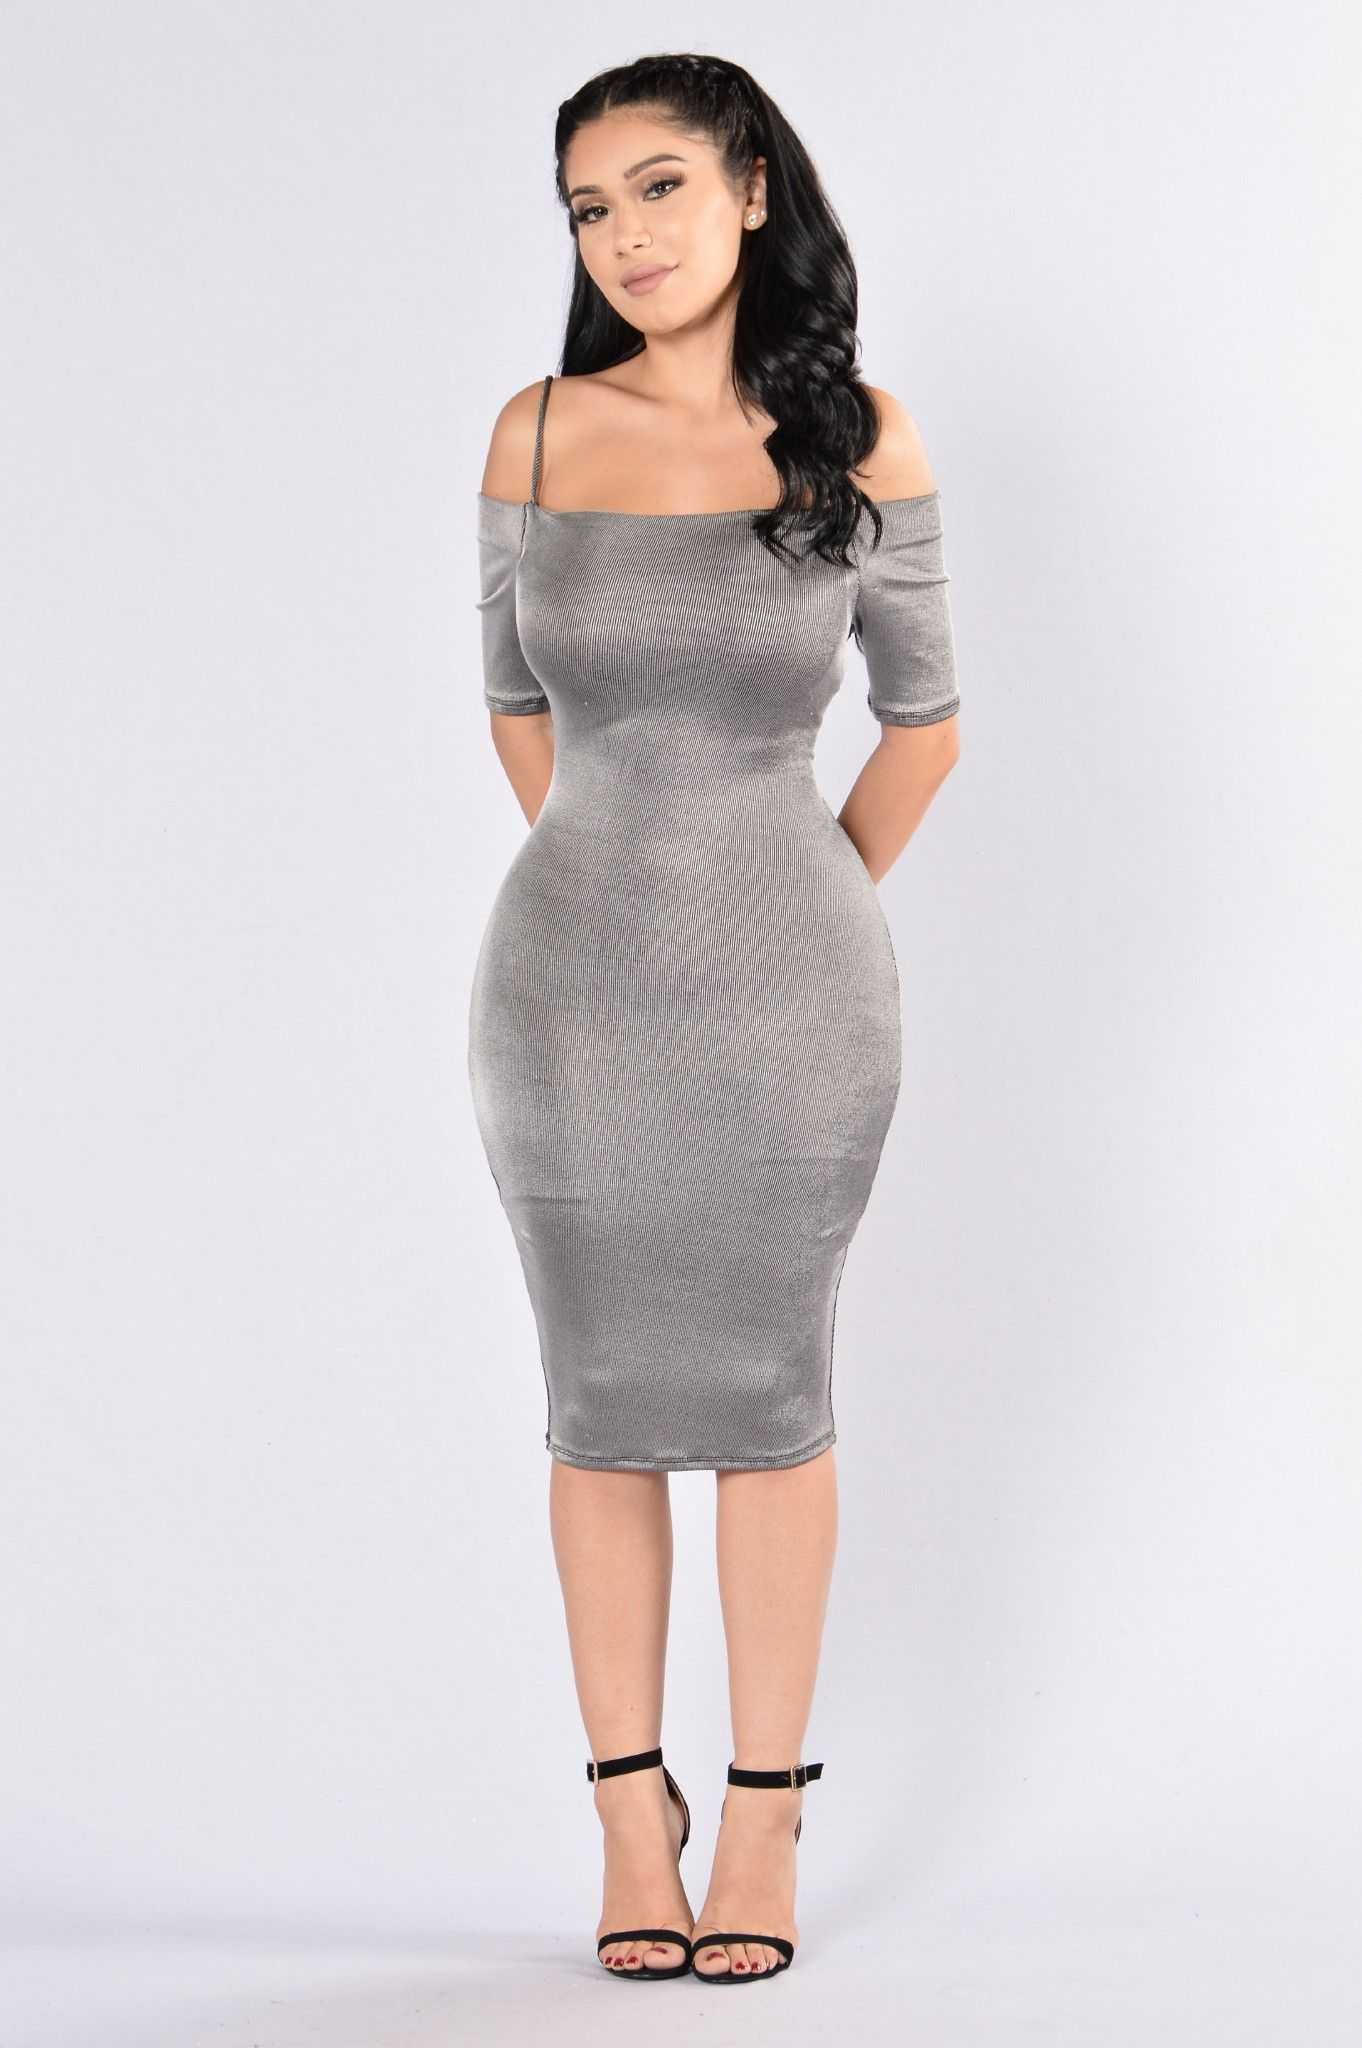 64066beebe0d Available in Grey - Off Shoulder Dress - Midi Length - Body Con - 63%  Polyester